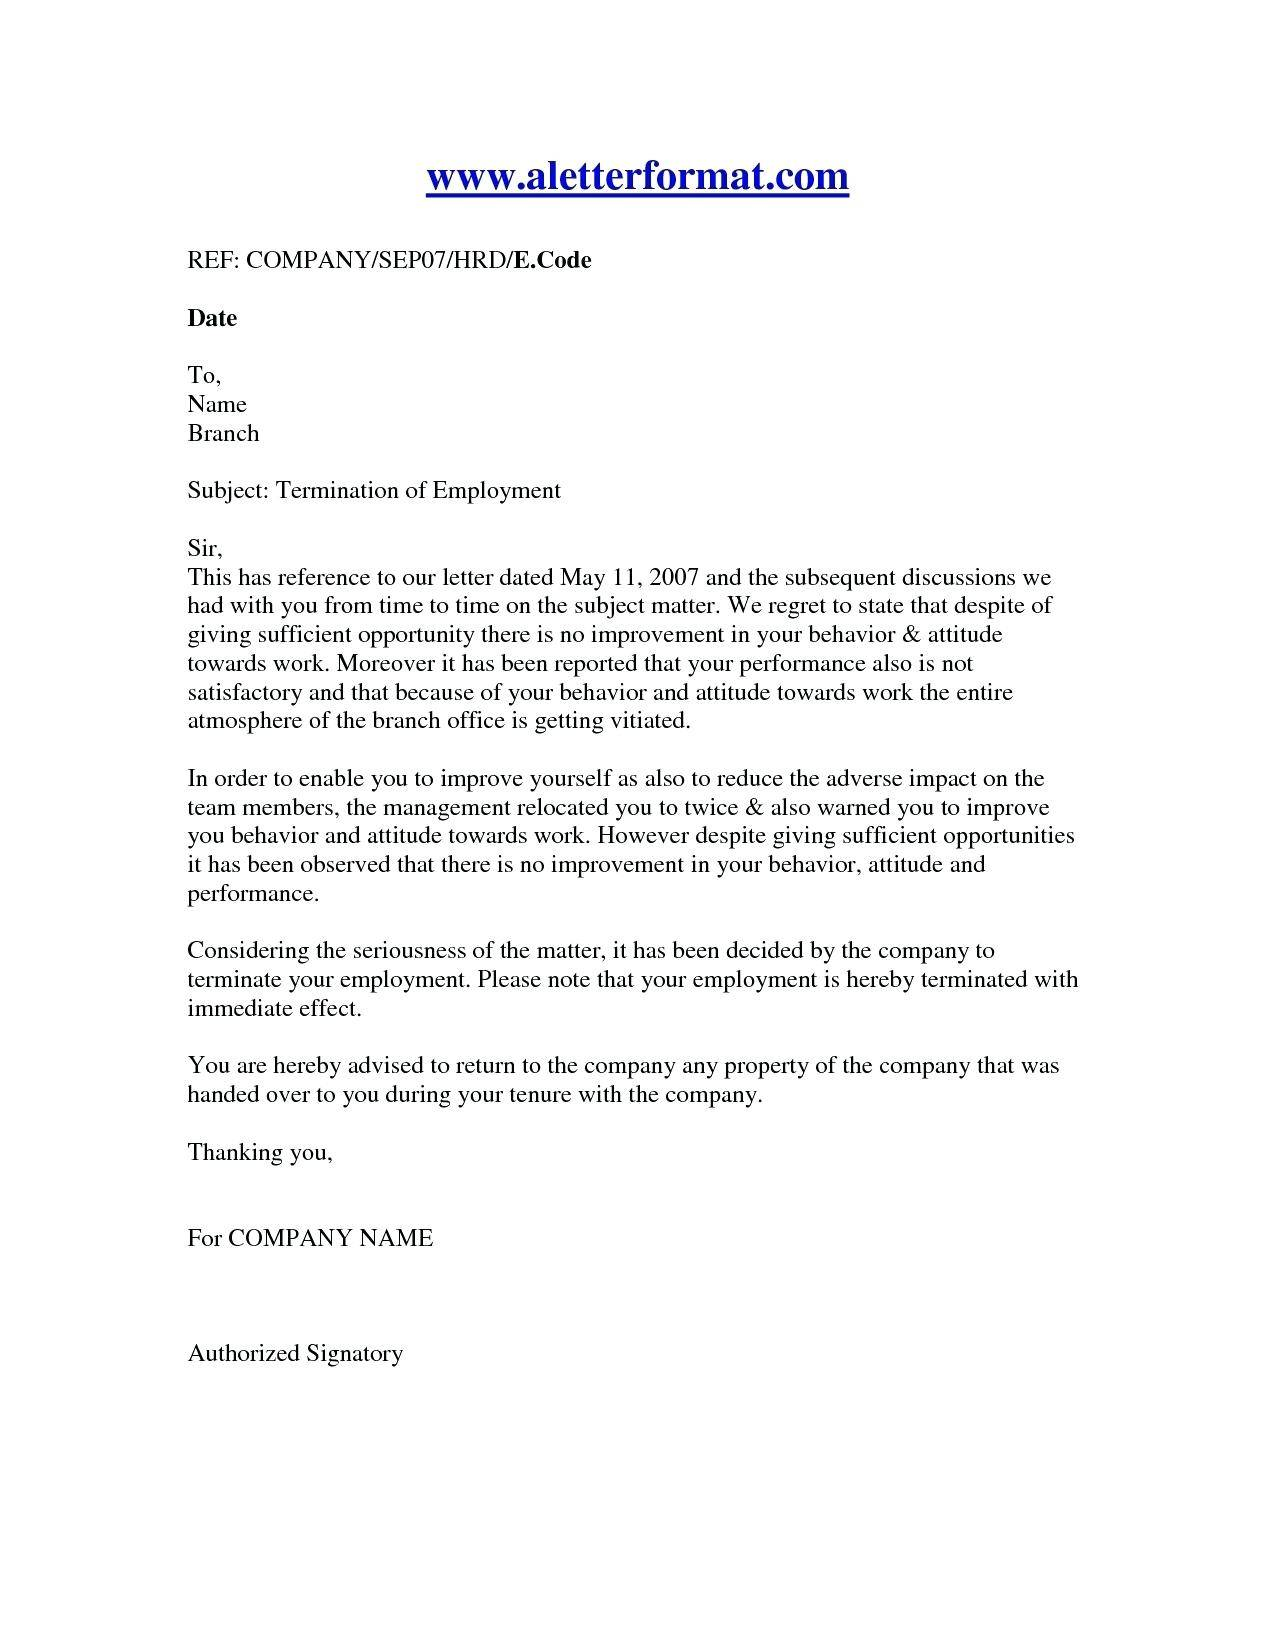 Resignation Letter Template South Africa